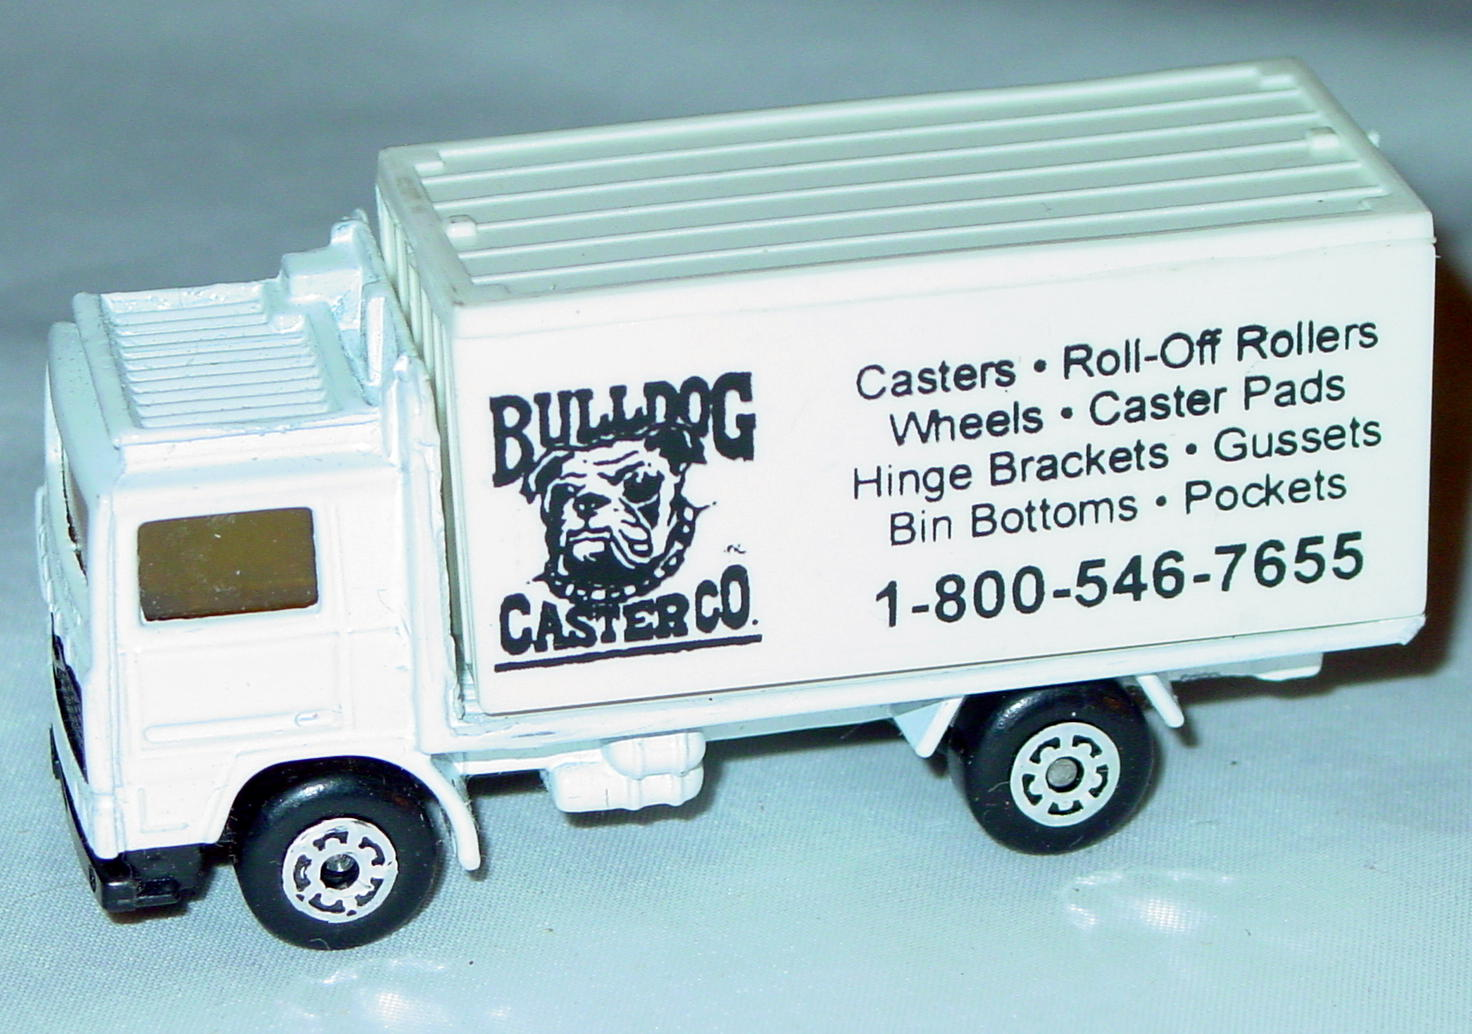 ASAP-CCI 20 D 60 - Volvo Cont Truck White and White Bulldog Caster made in China ASAP